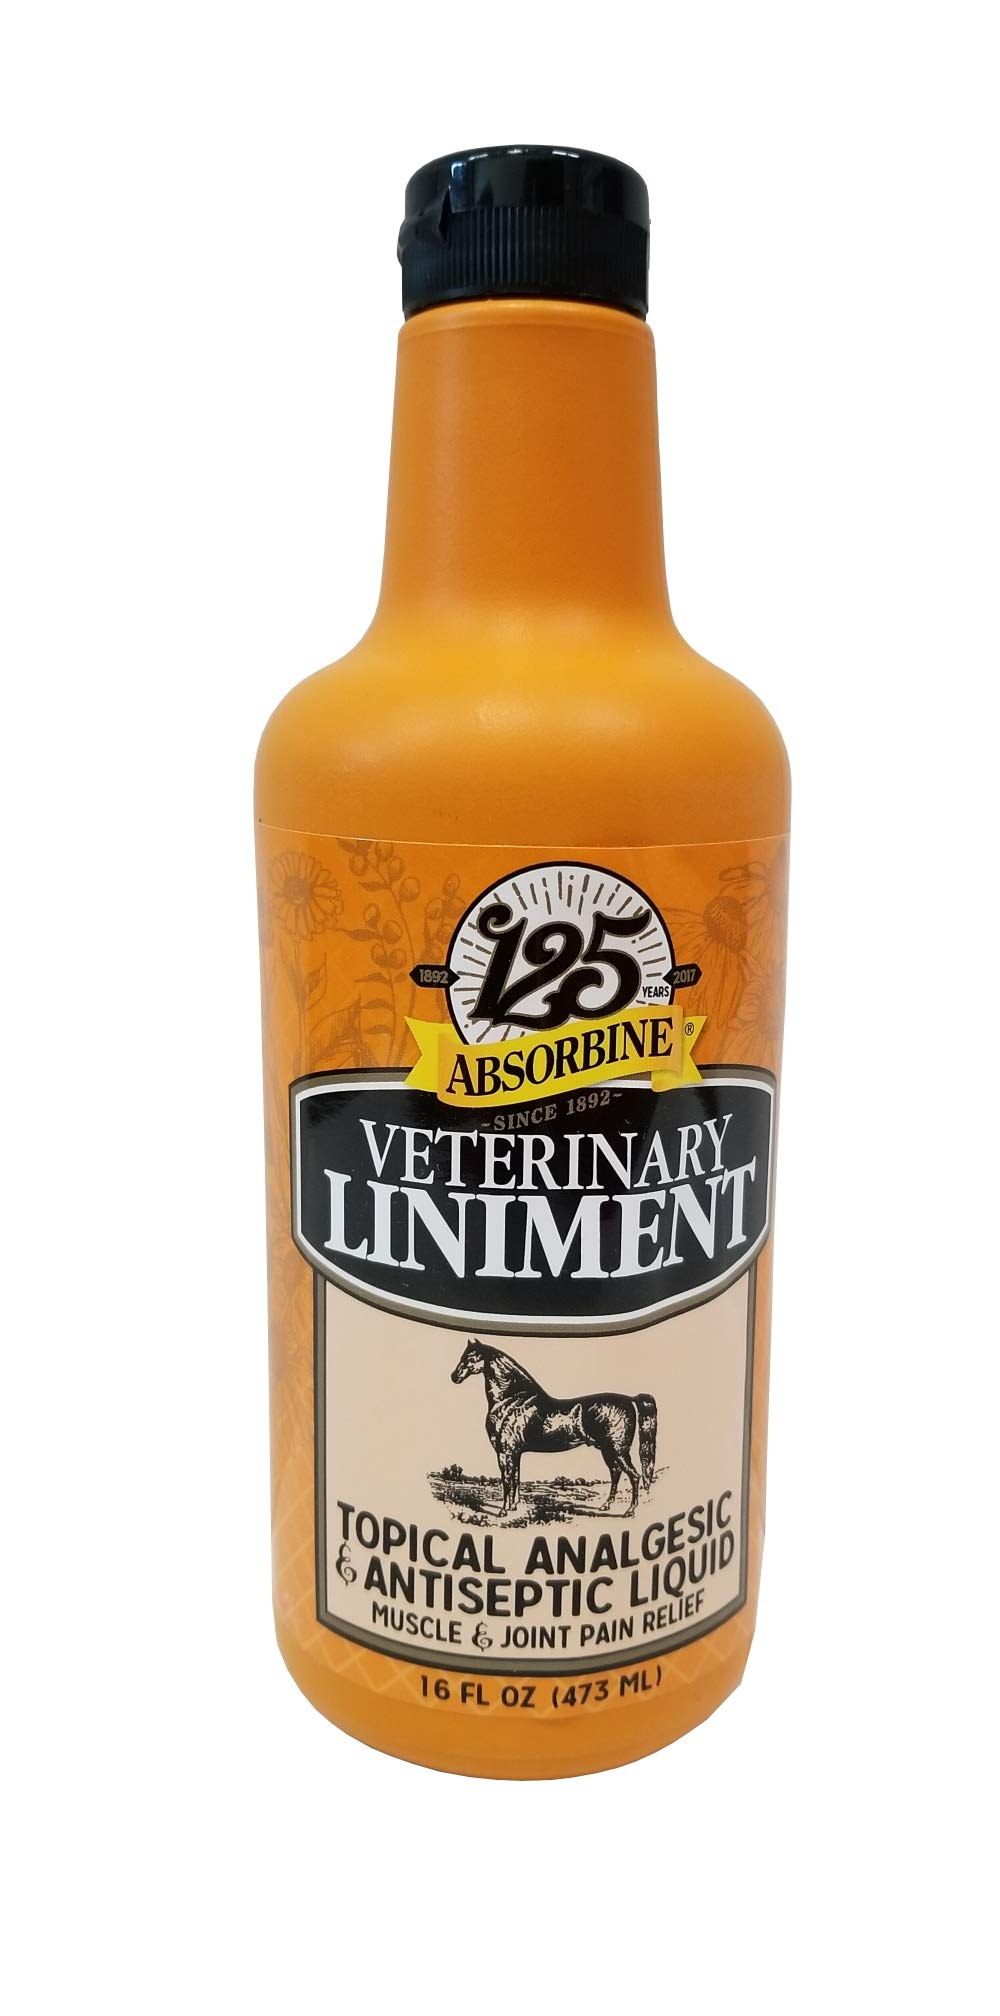 Absorbine Veterinary 16 oz Liniment Liquid Topical Analgesic Sore Muscle and Joint Pain Relief by Absorbine